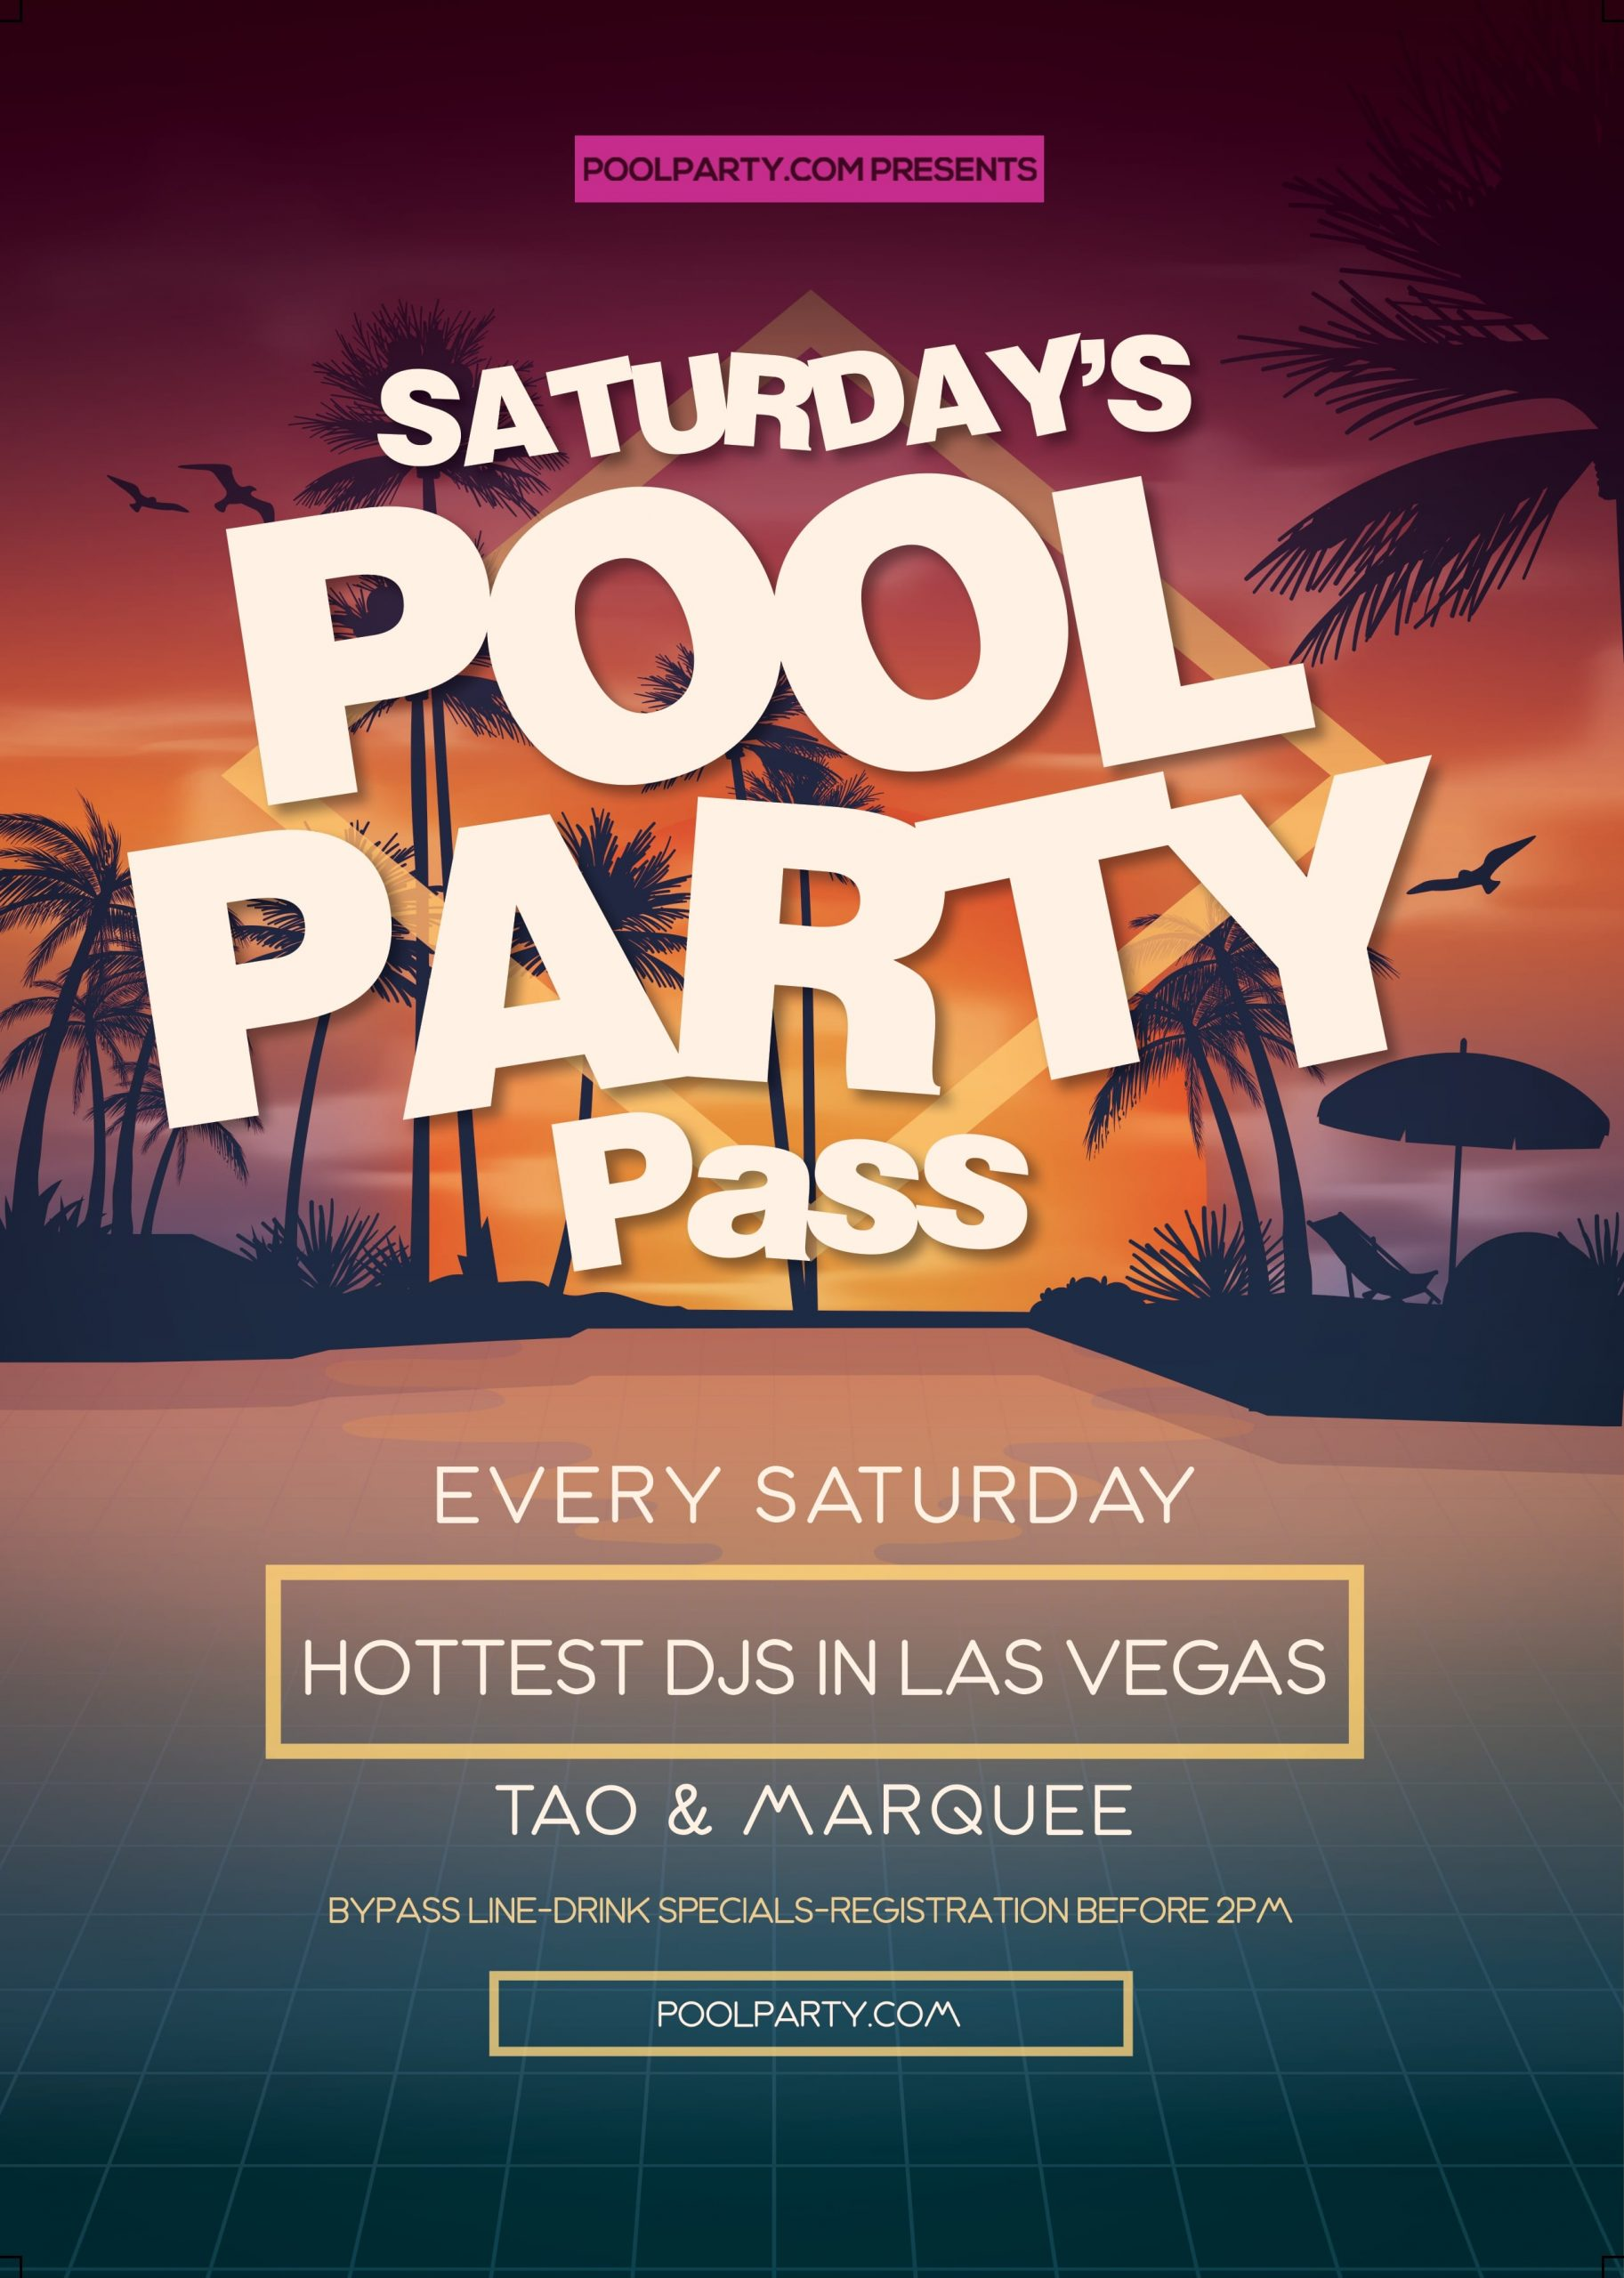 Saturday's Pool Party Pass (May 2nd 2020)